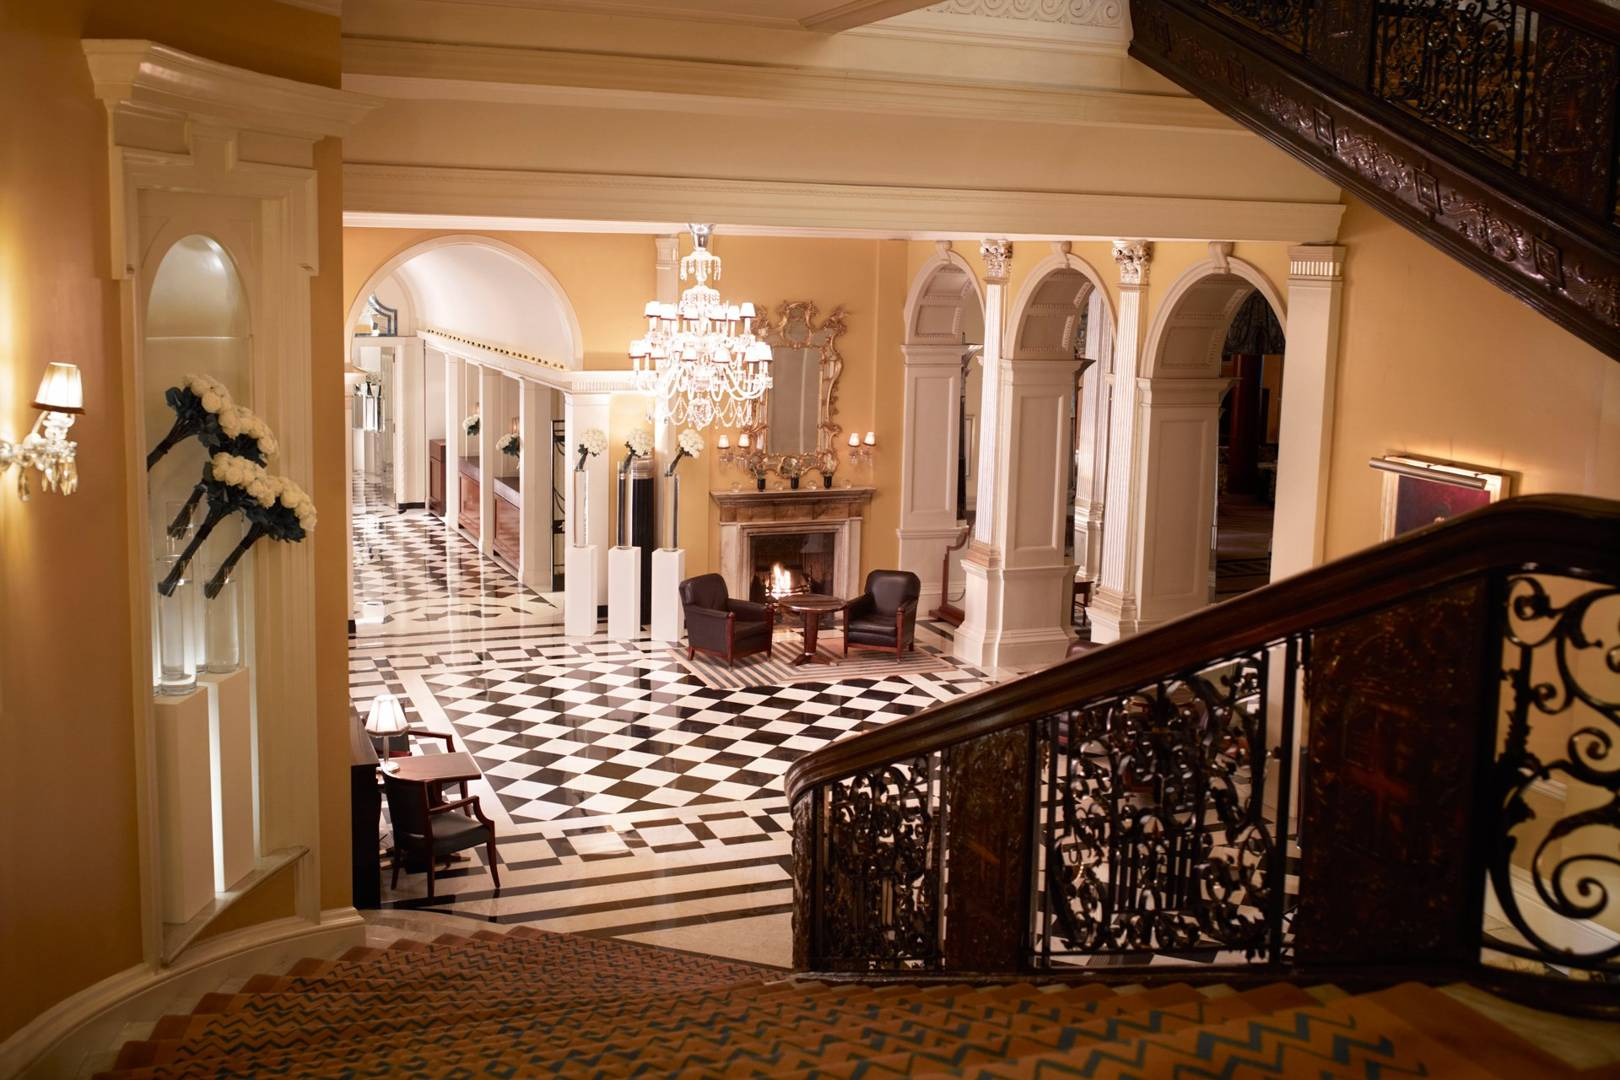 images Why Claridges Is the Best Hotel In the World